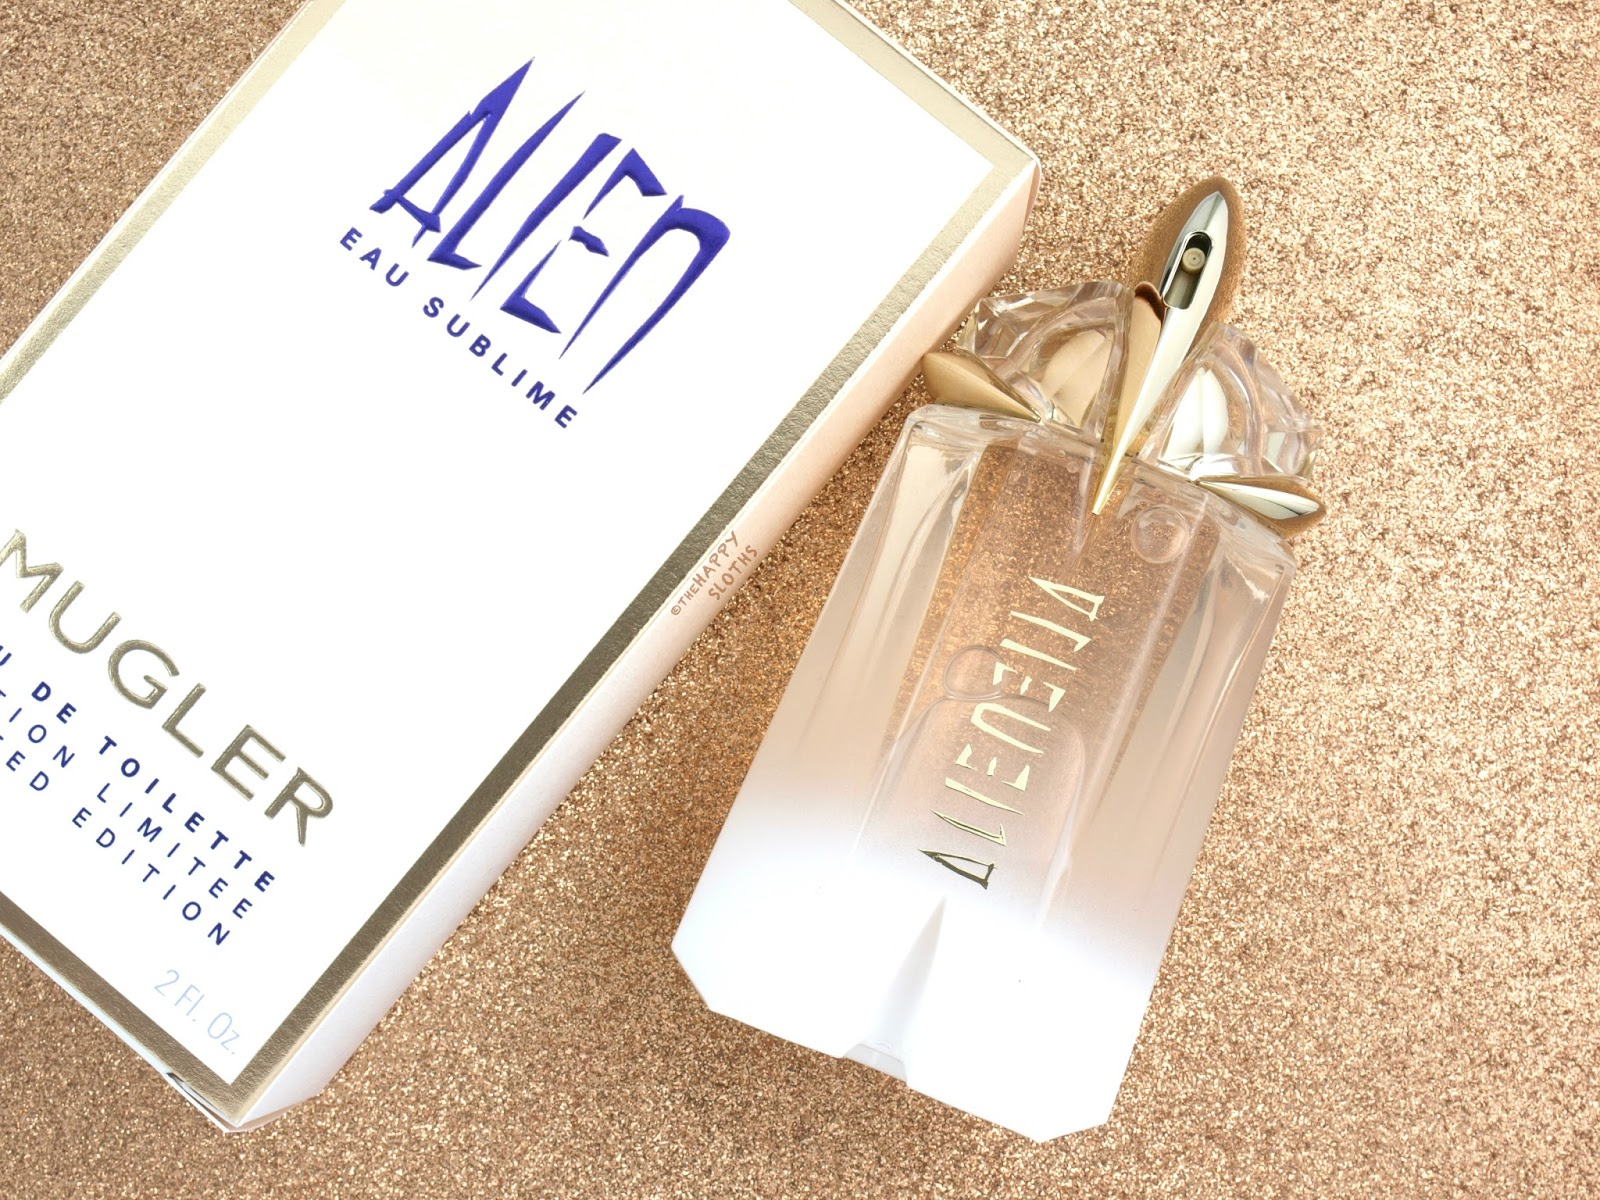 Mugler Alien Eau Sublime: Review